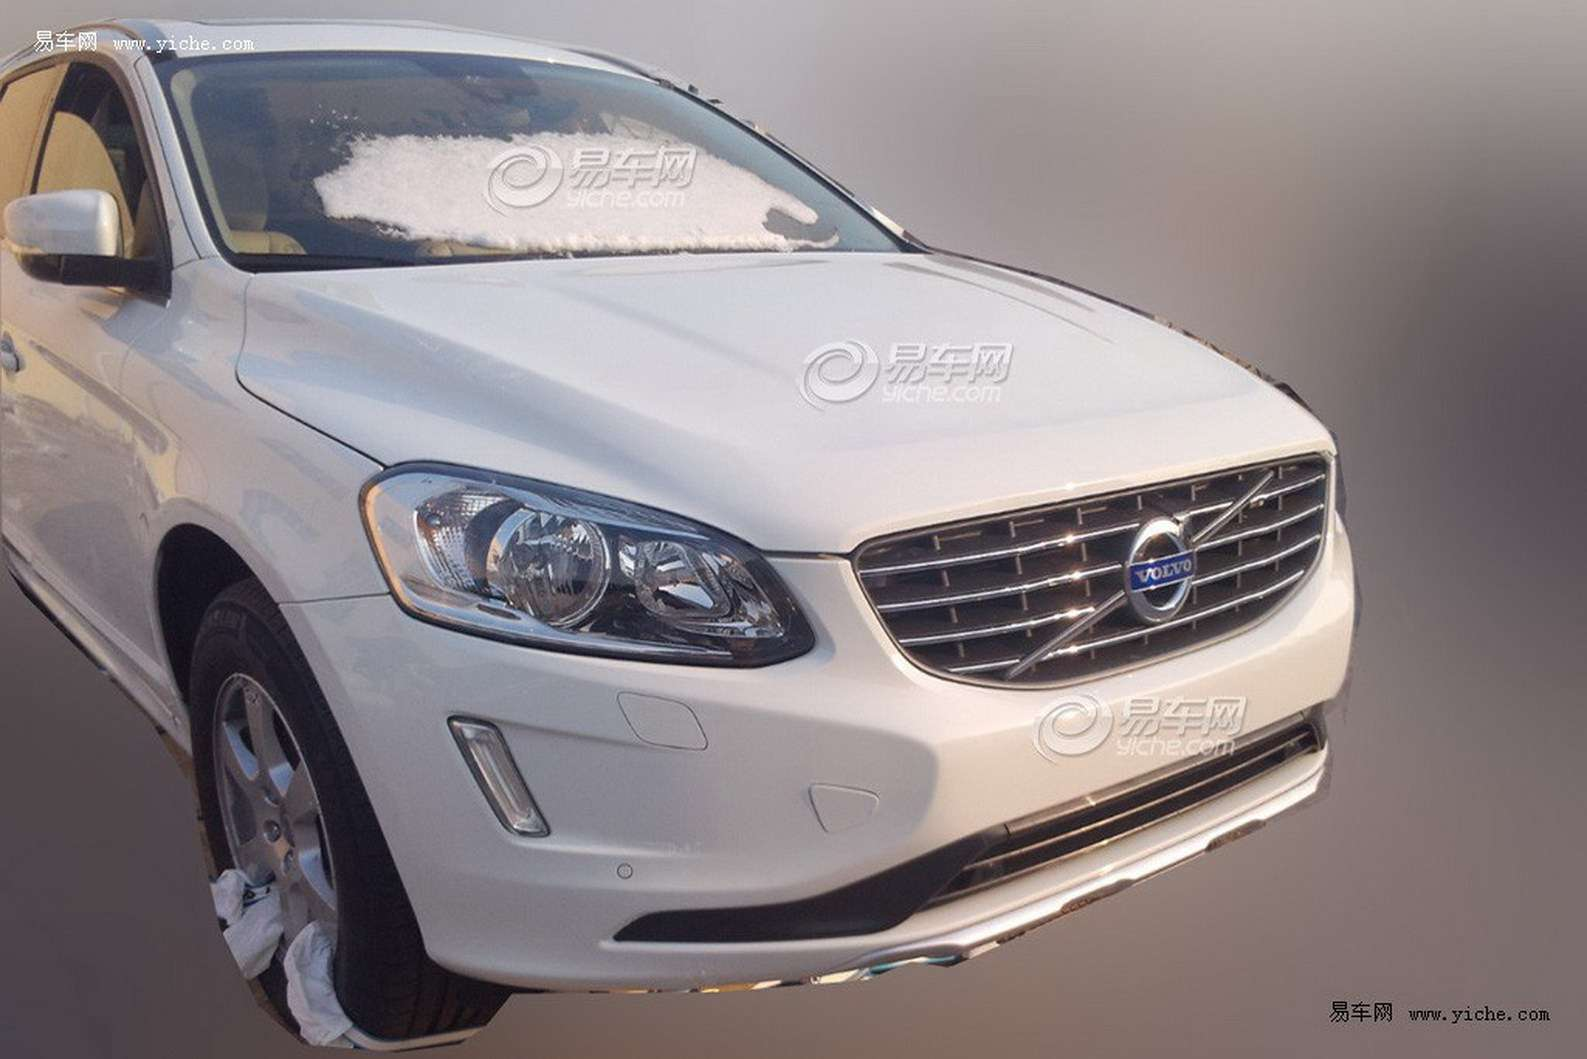 Volvo XC60 2014 facelifting